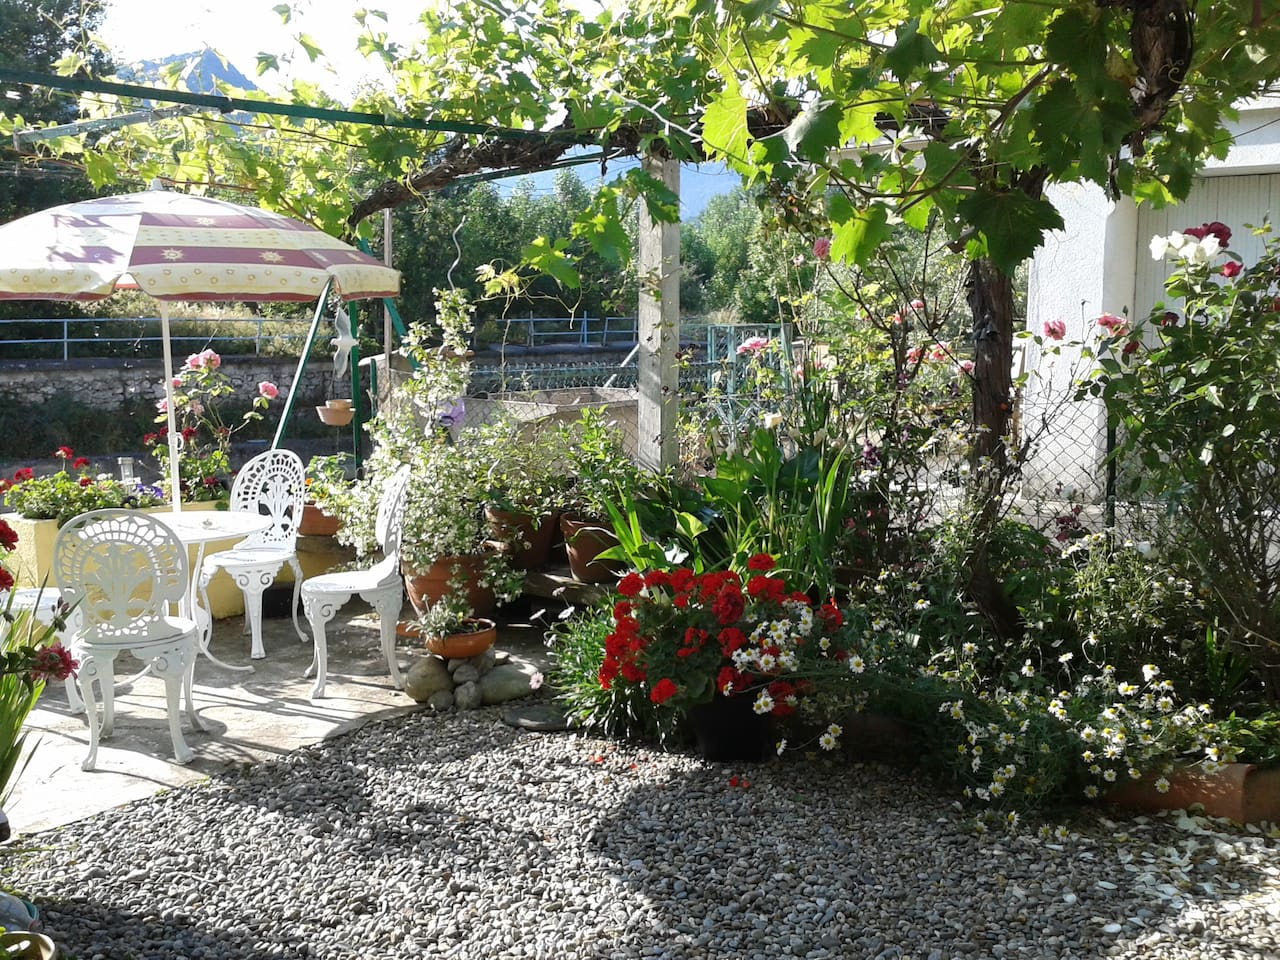 Relax and watch the river flow by in this pretty garden!